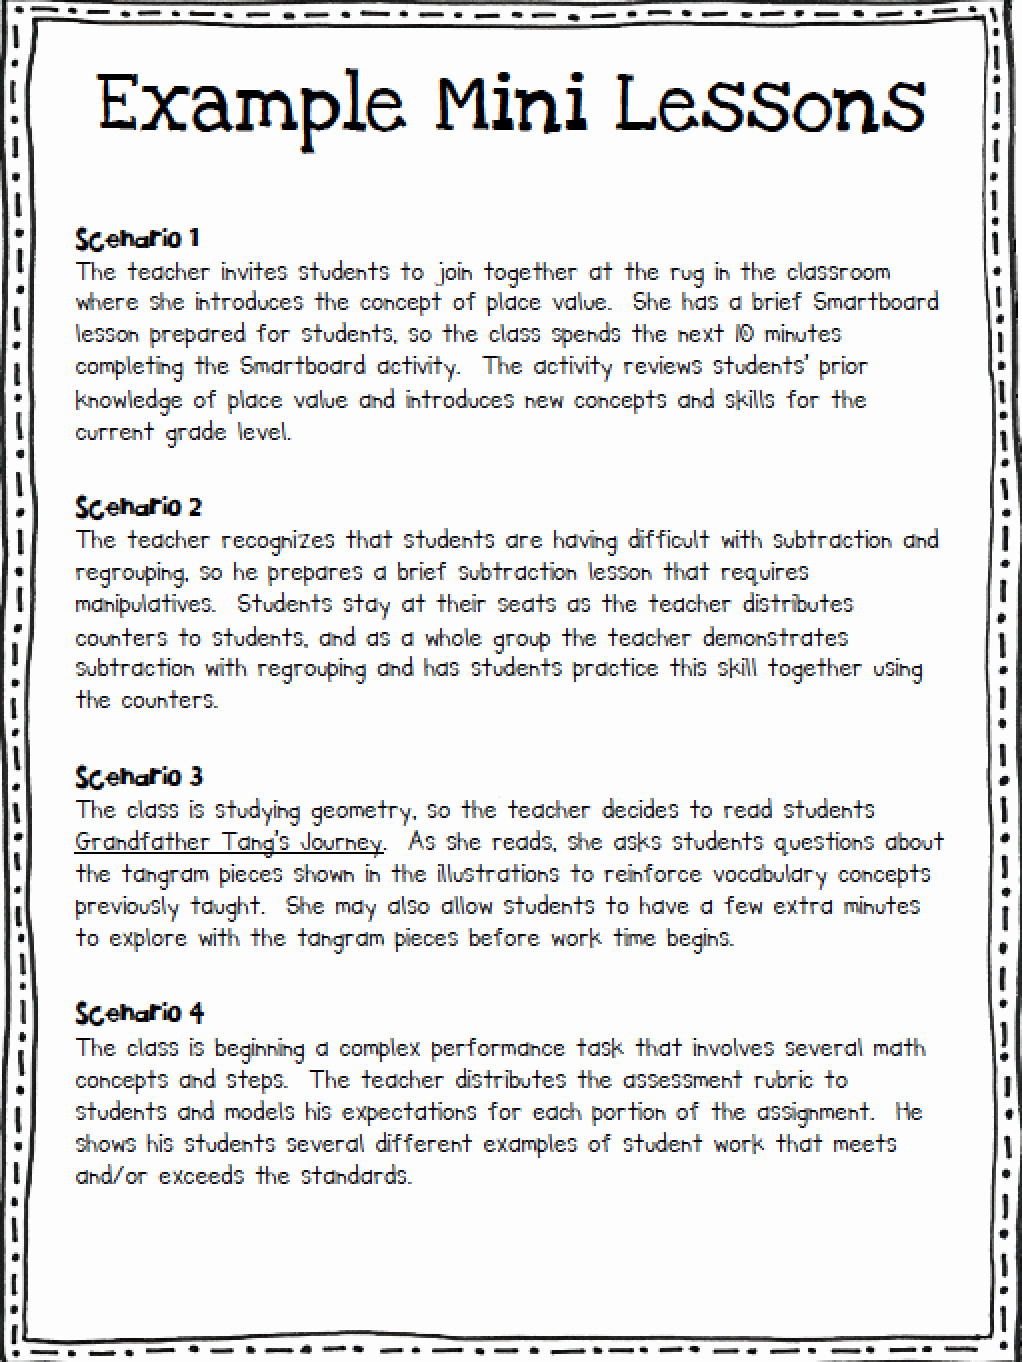 Mini Lesson Plan Template Inspirational Math Workshop In the Elementary Classroom ashleigh S